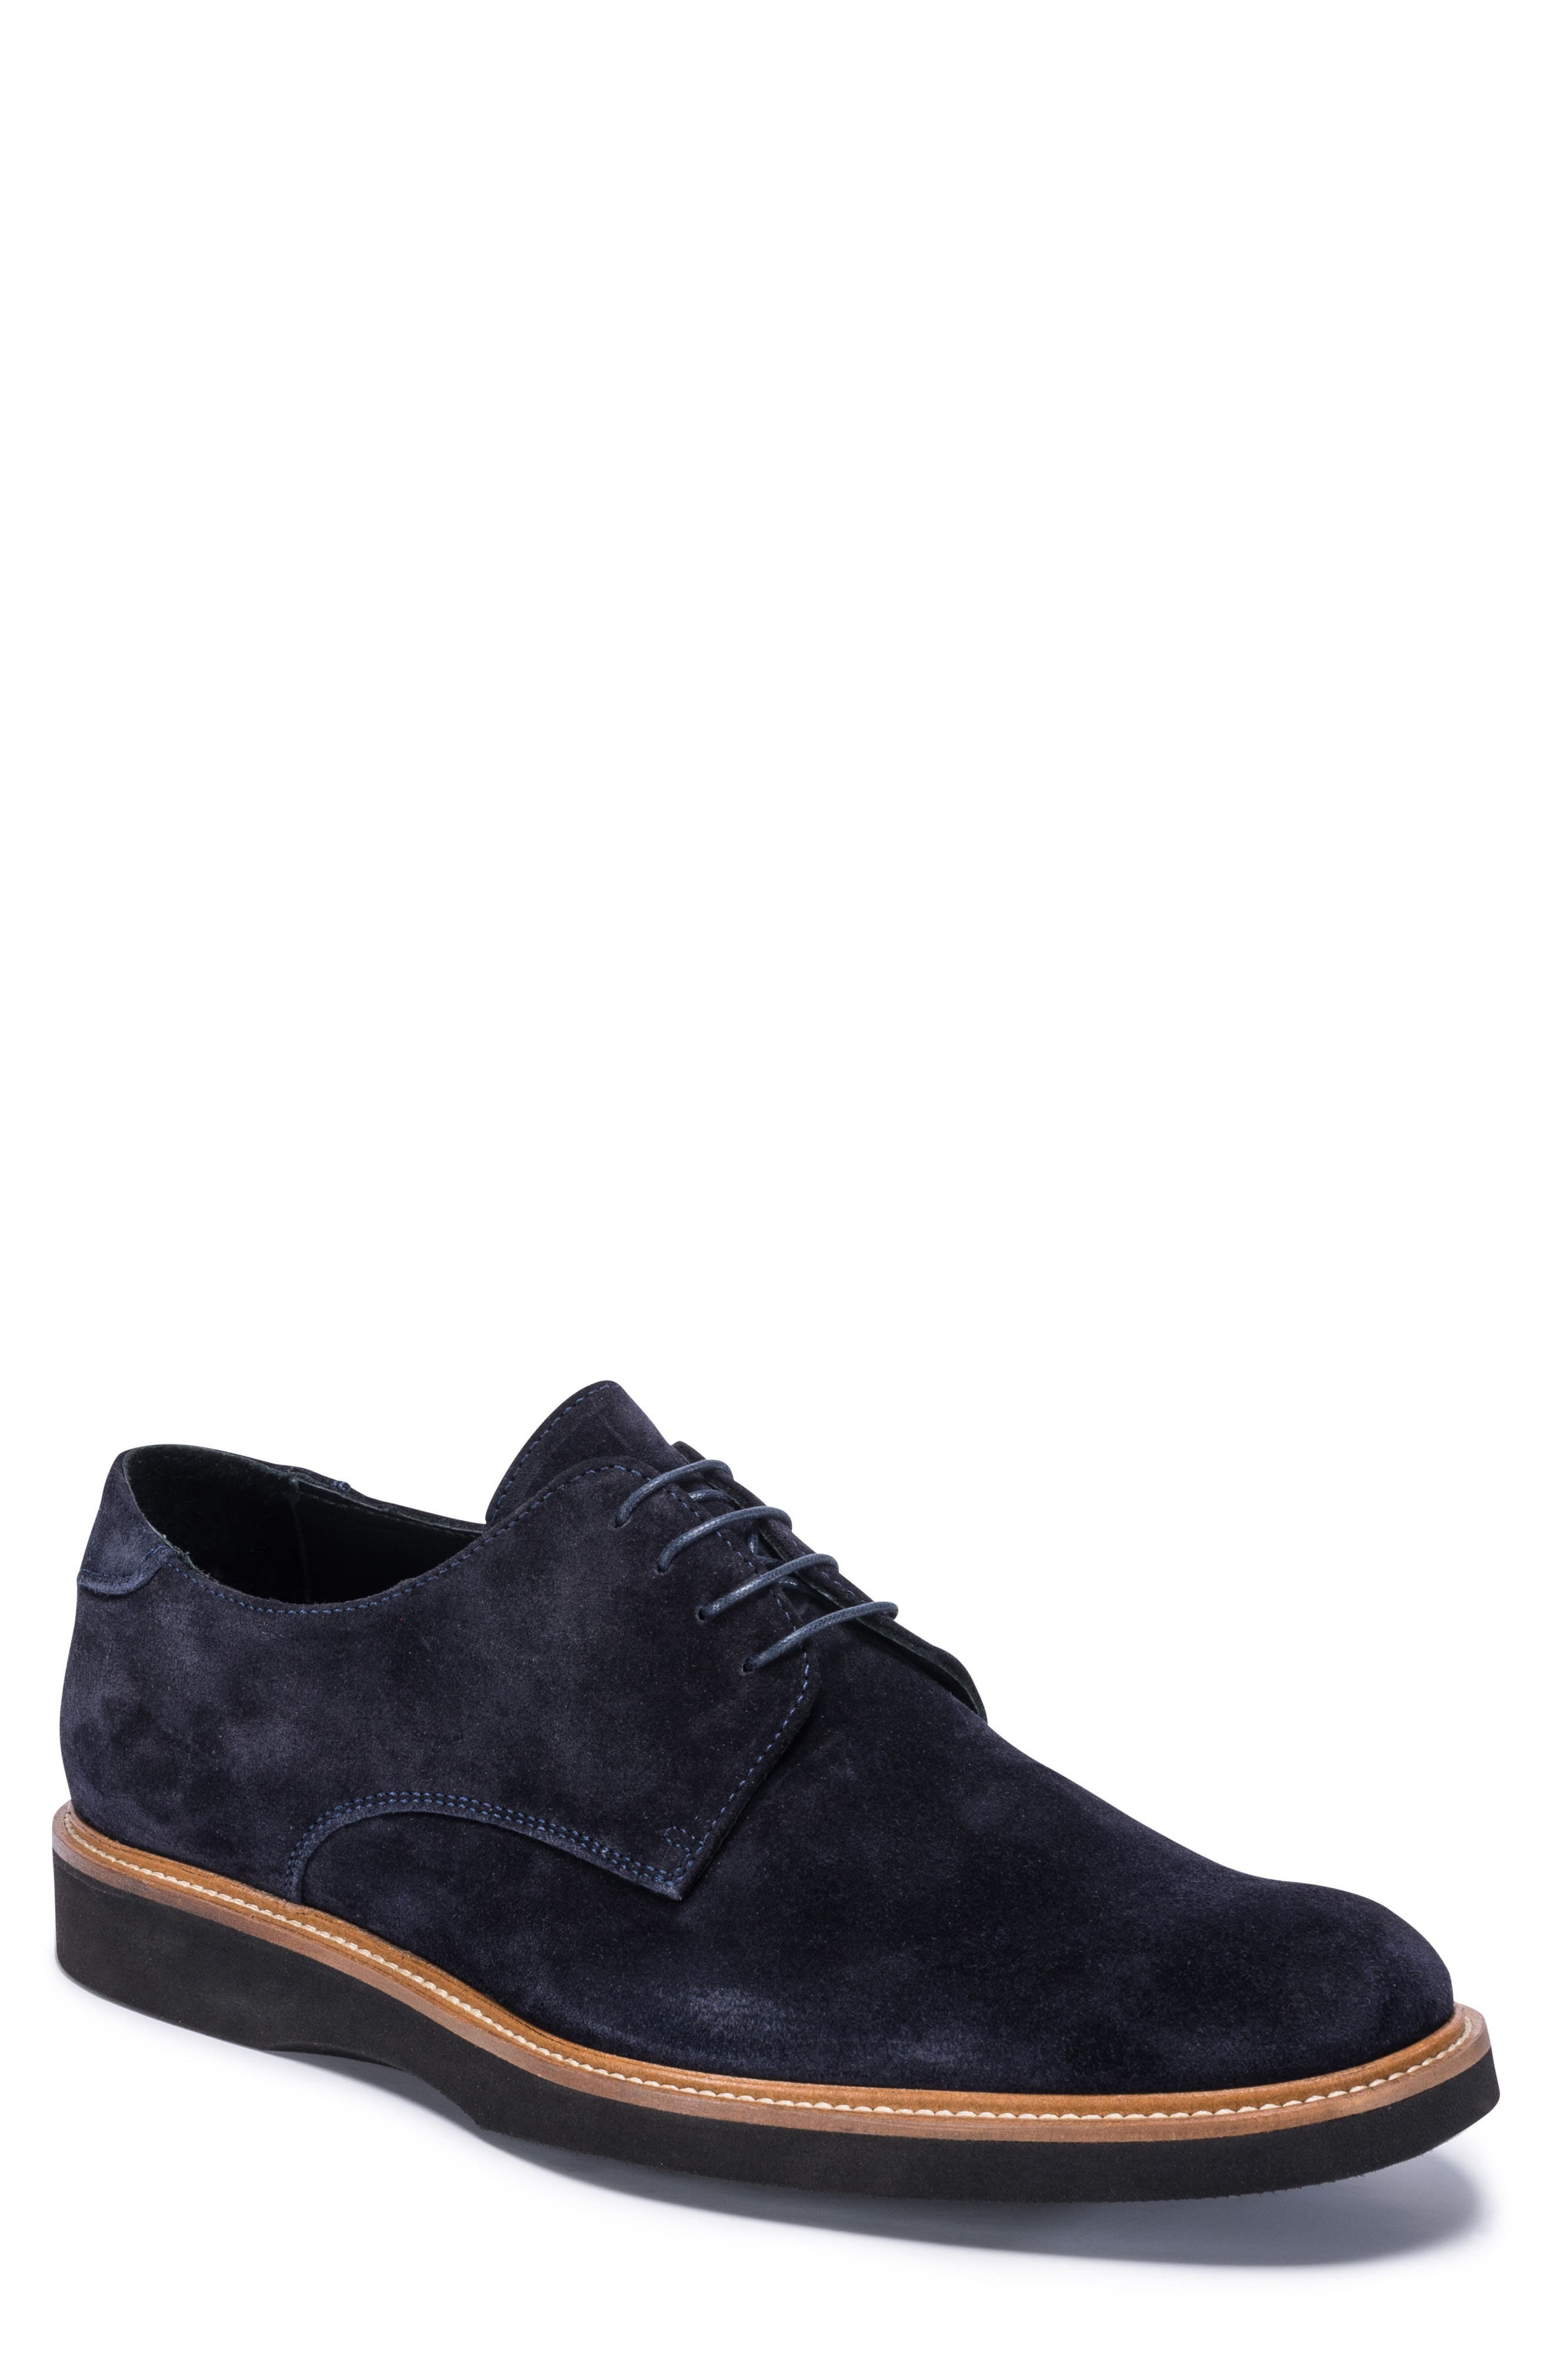 Siena Plain Toe Derby,                         Main,                         color, Blue Suede